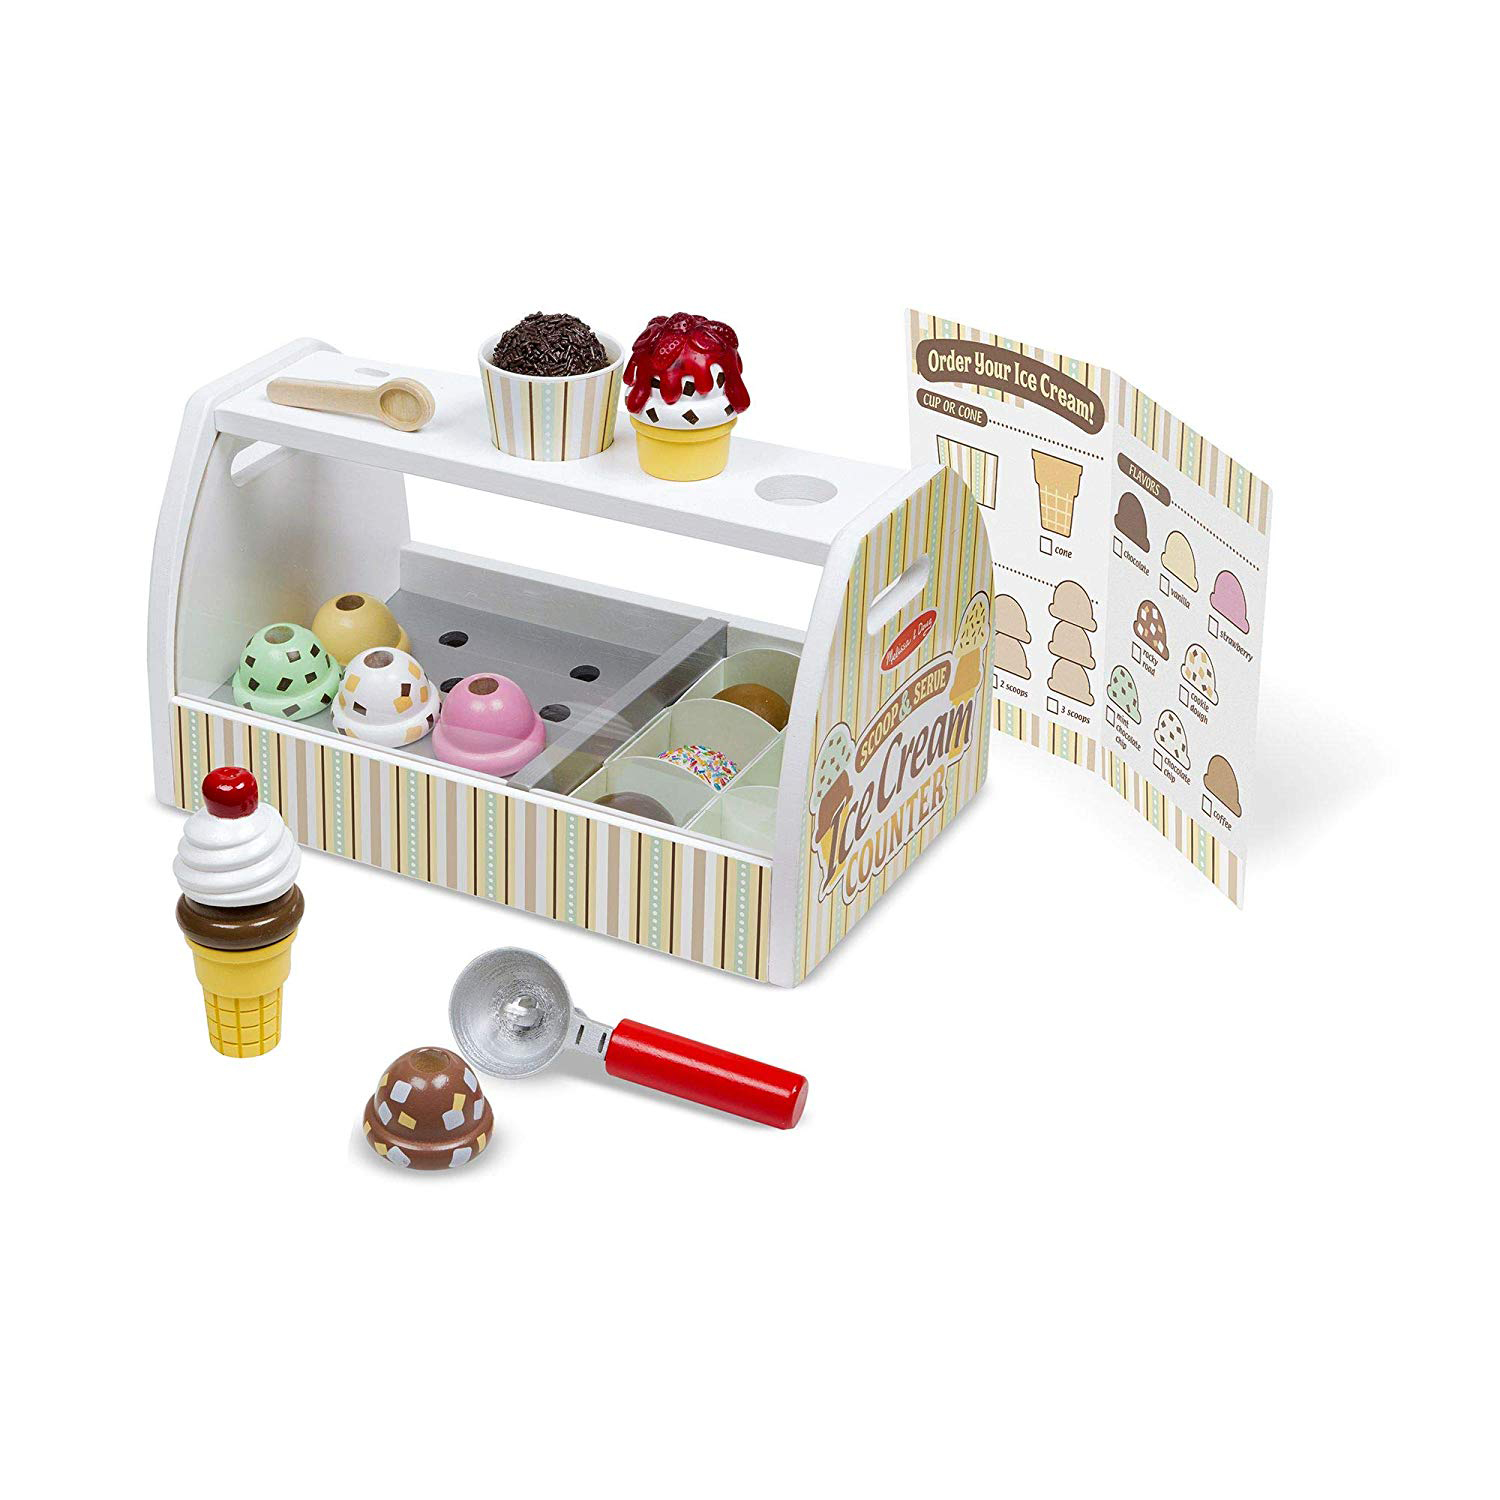 Cute Valentine's Day gifts for kids - Melissa & Doug Wooden Scoop & Serve Ice Cream Counter